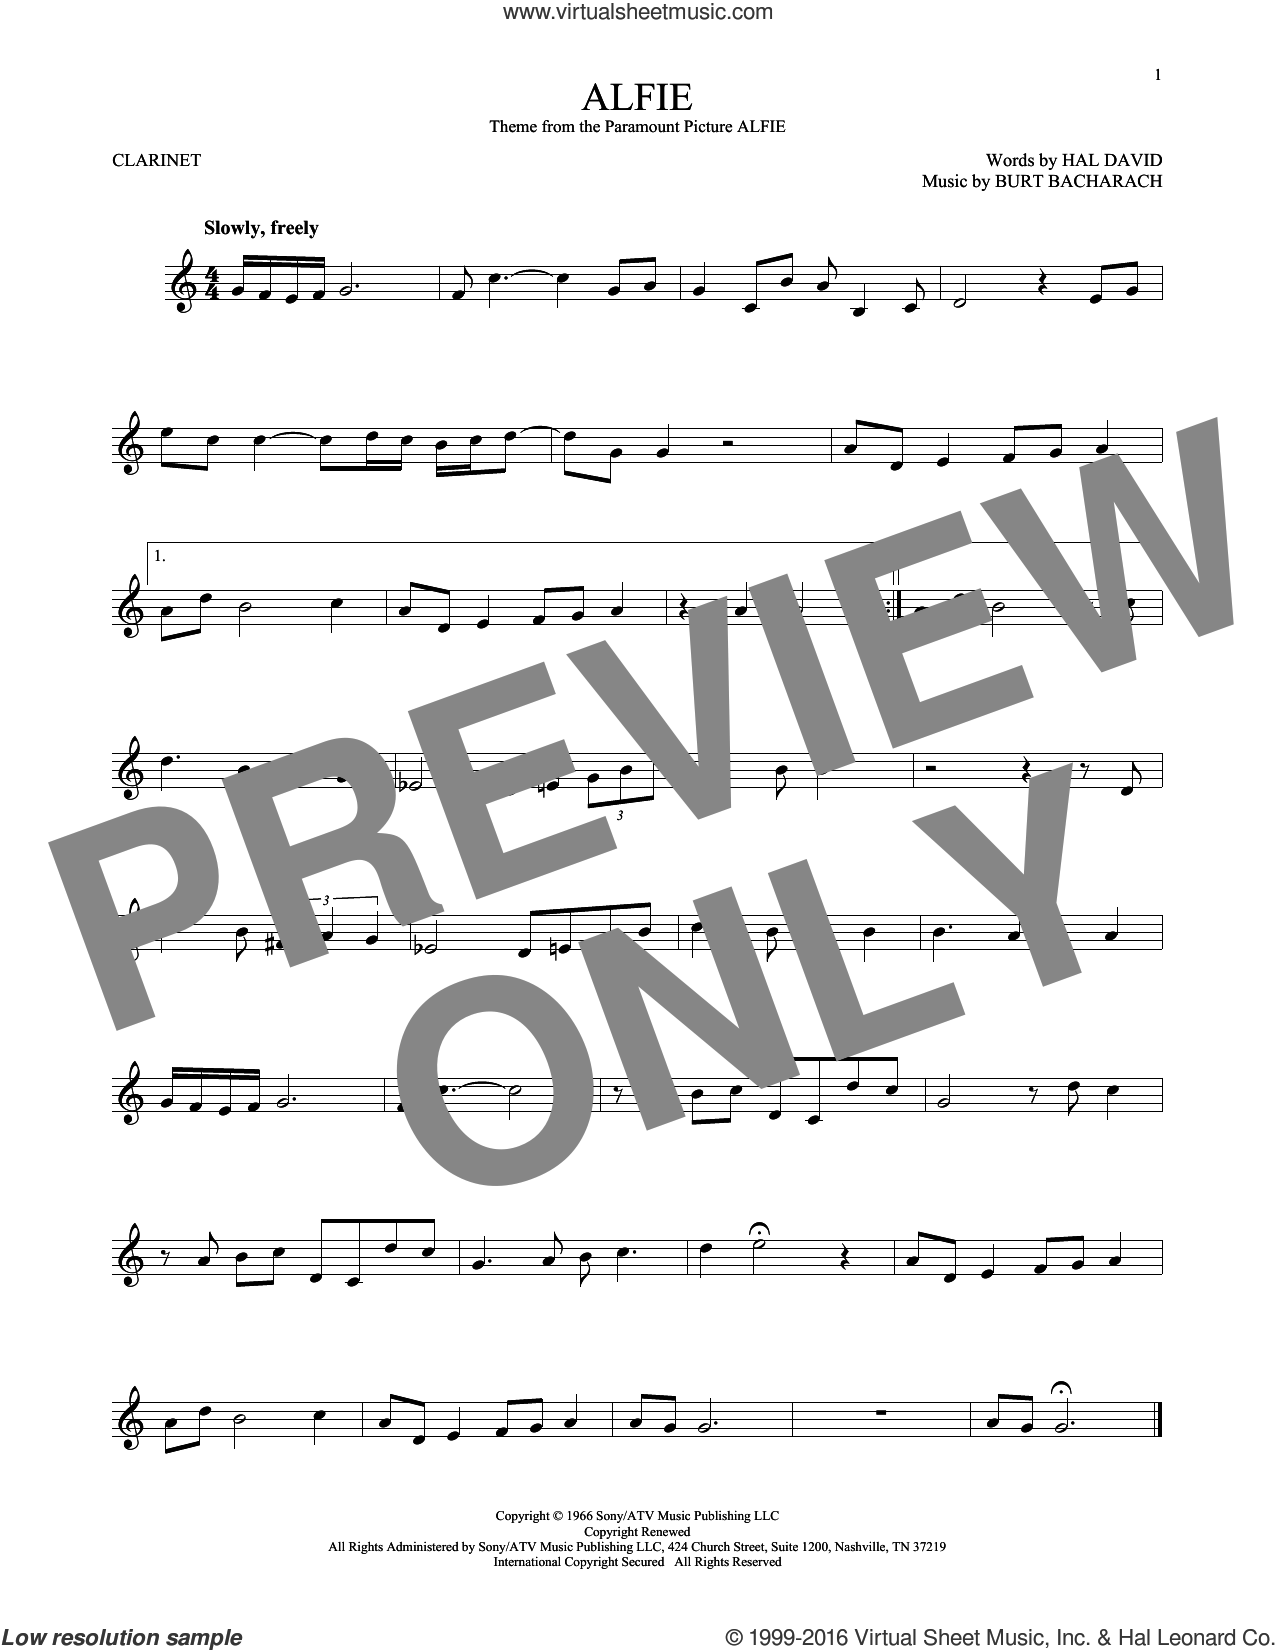 Alfie sheet music for clarinet solo by Dionne Warwick, Cher, Miscellaneous, Sonny Rollins, Stevie Wonder, Burt Bacharach and Hal David, intermediate skill level